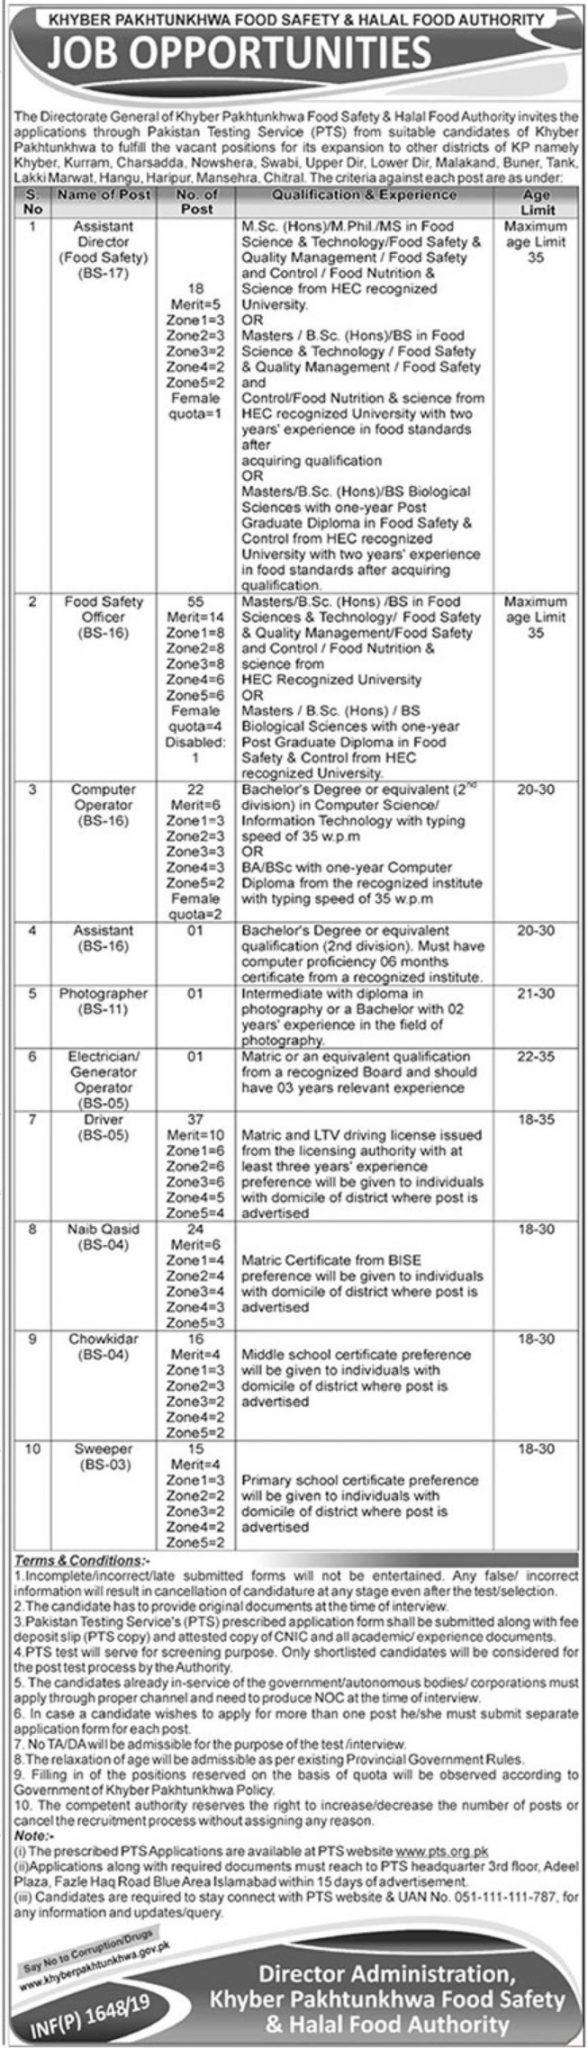 Food Safety and Halal Food Authority KPK Jobs 2019 PTS Test Application Form Roll Number Slips